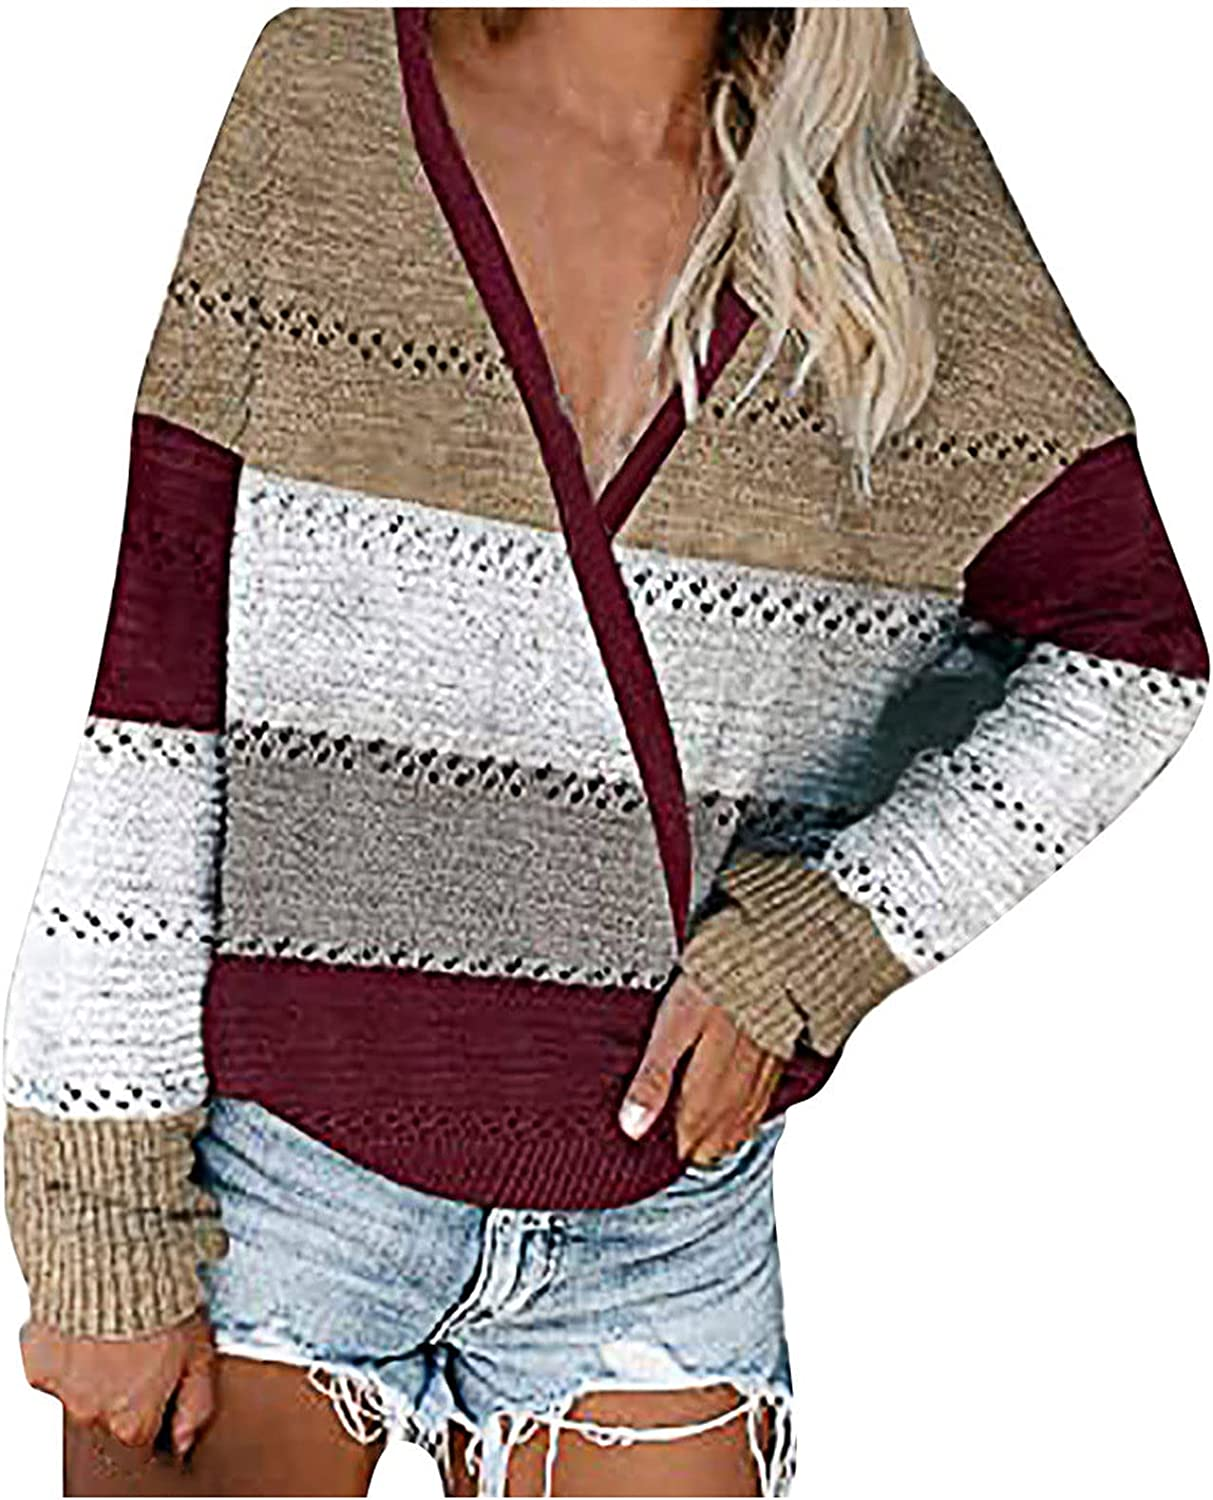 Womens Striped Color Block Sweater Fashion V Neck Long Sleeves Knit Pullovers Casual Patchwork Blouse Tops S-5XL